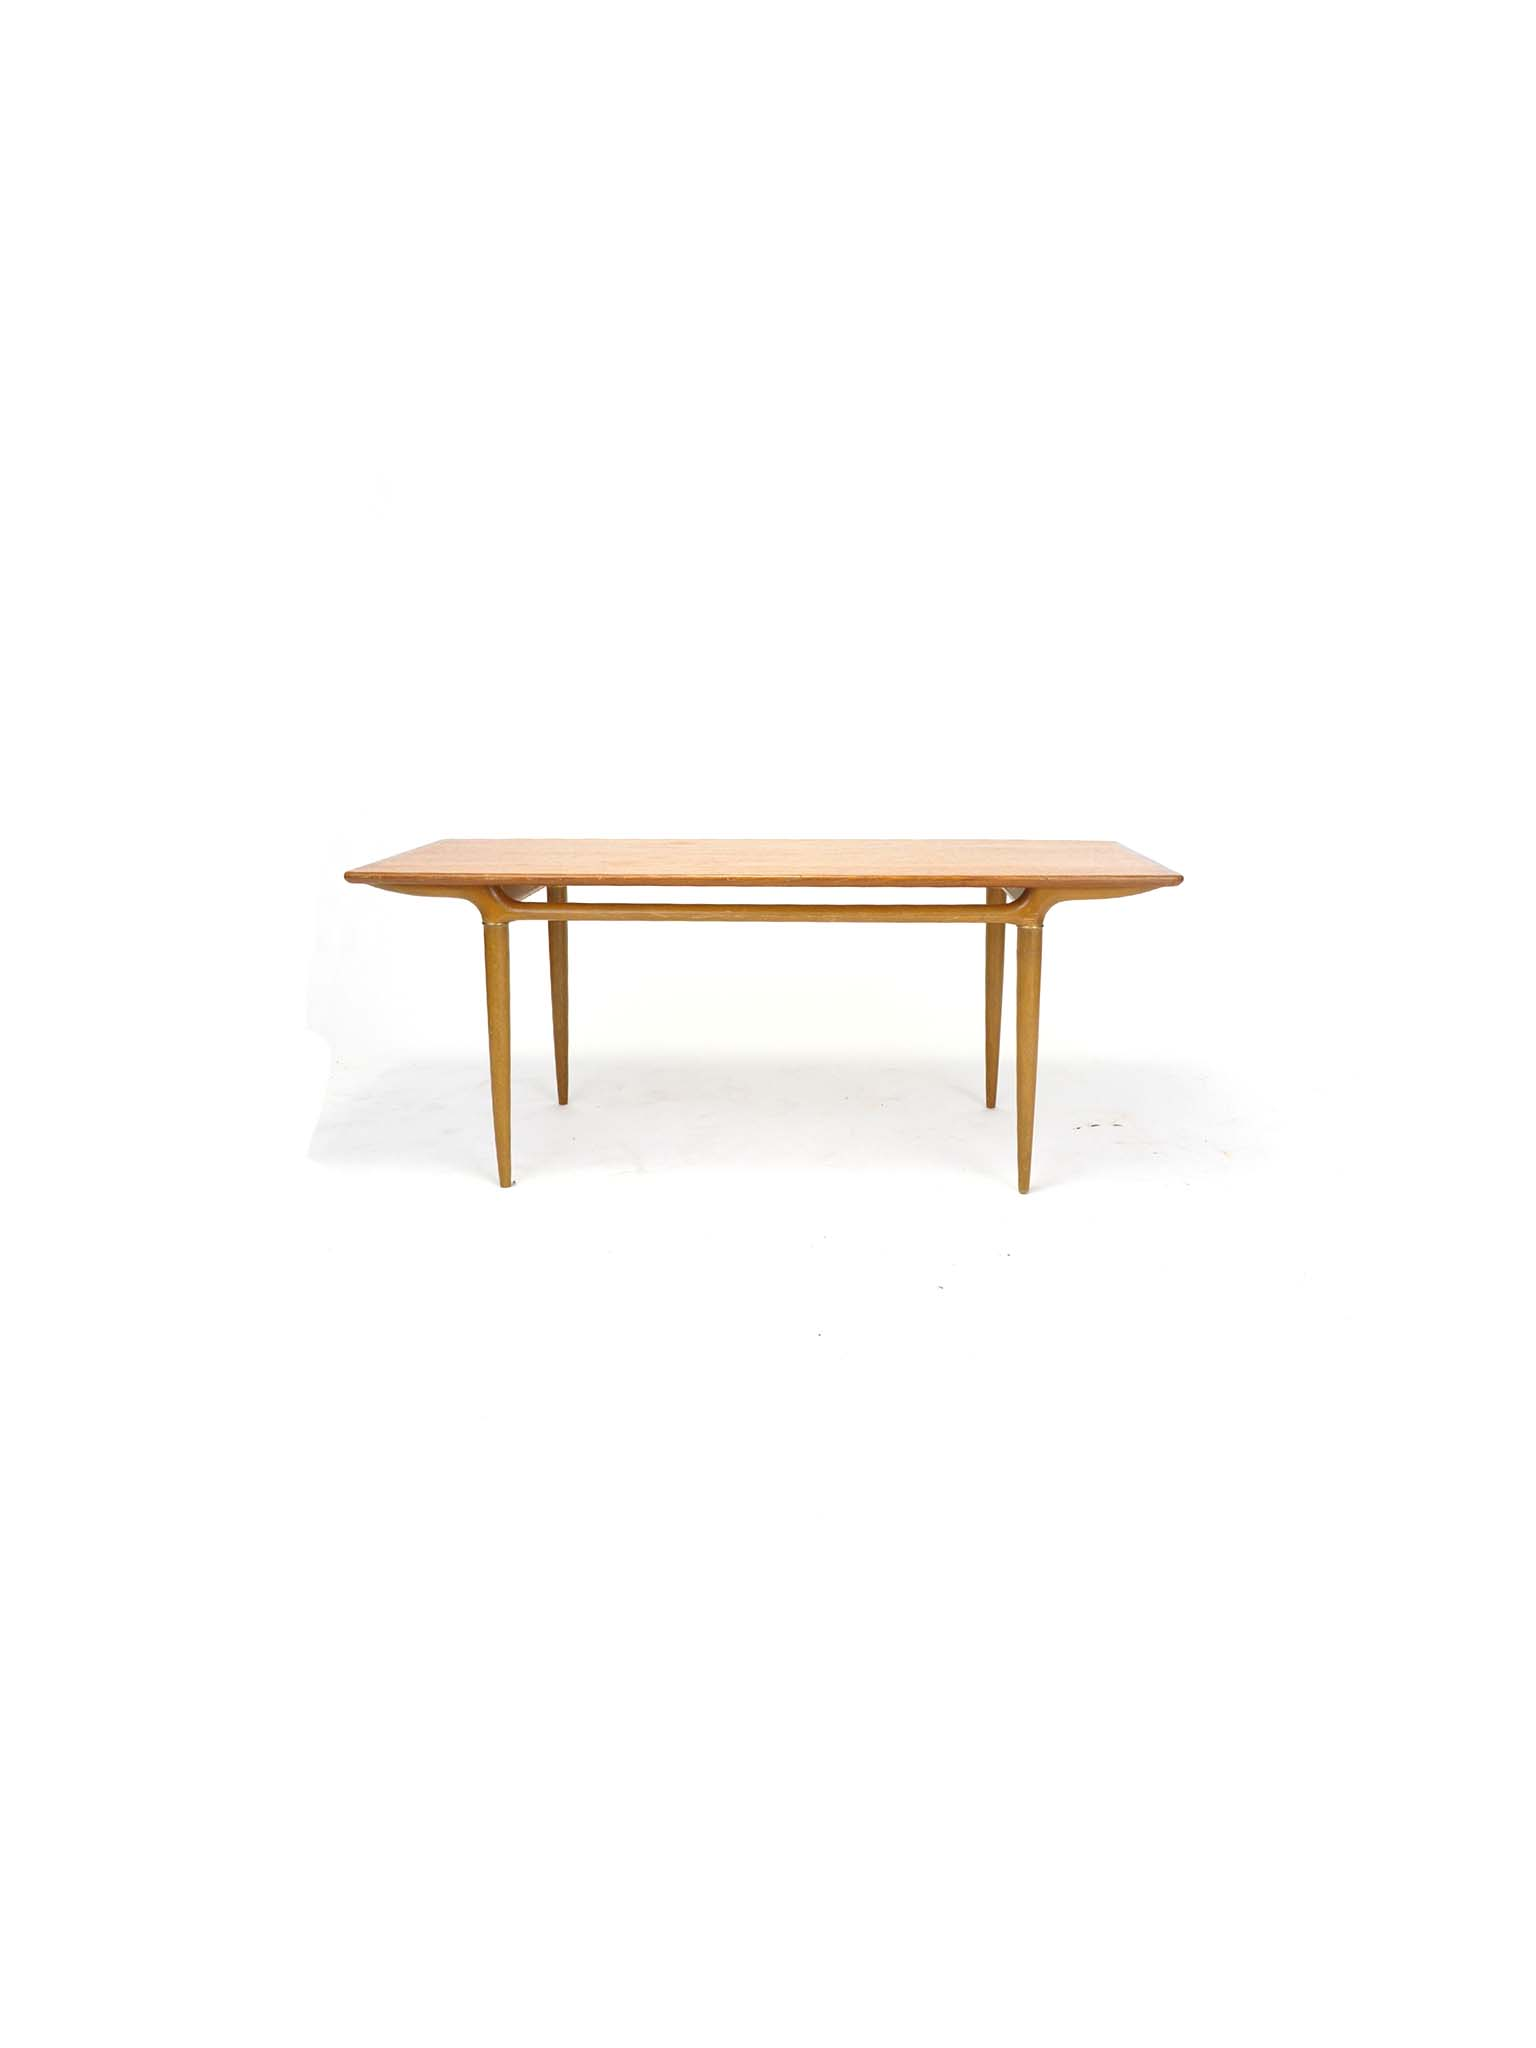 SVANTE SKOGH SOFA TABLE CORTINA